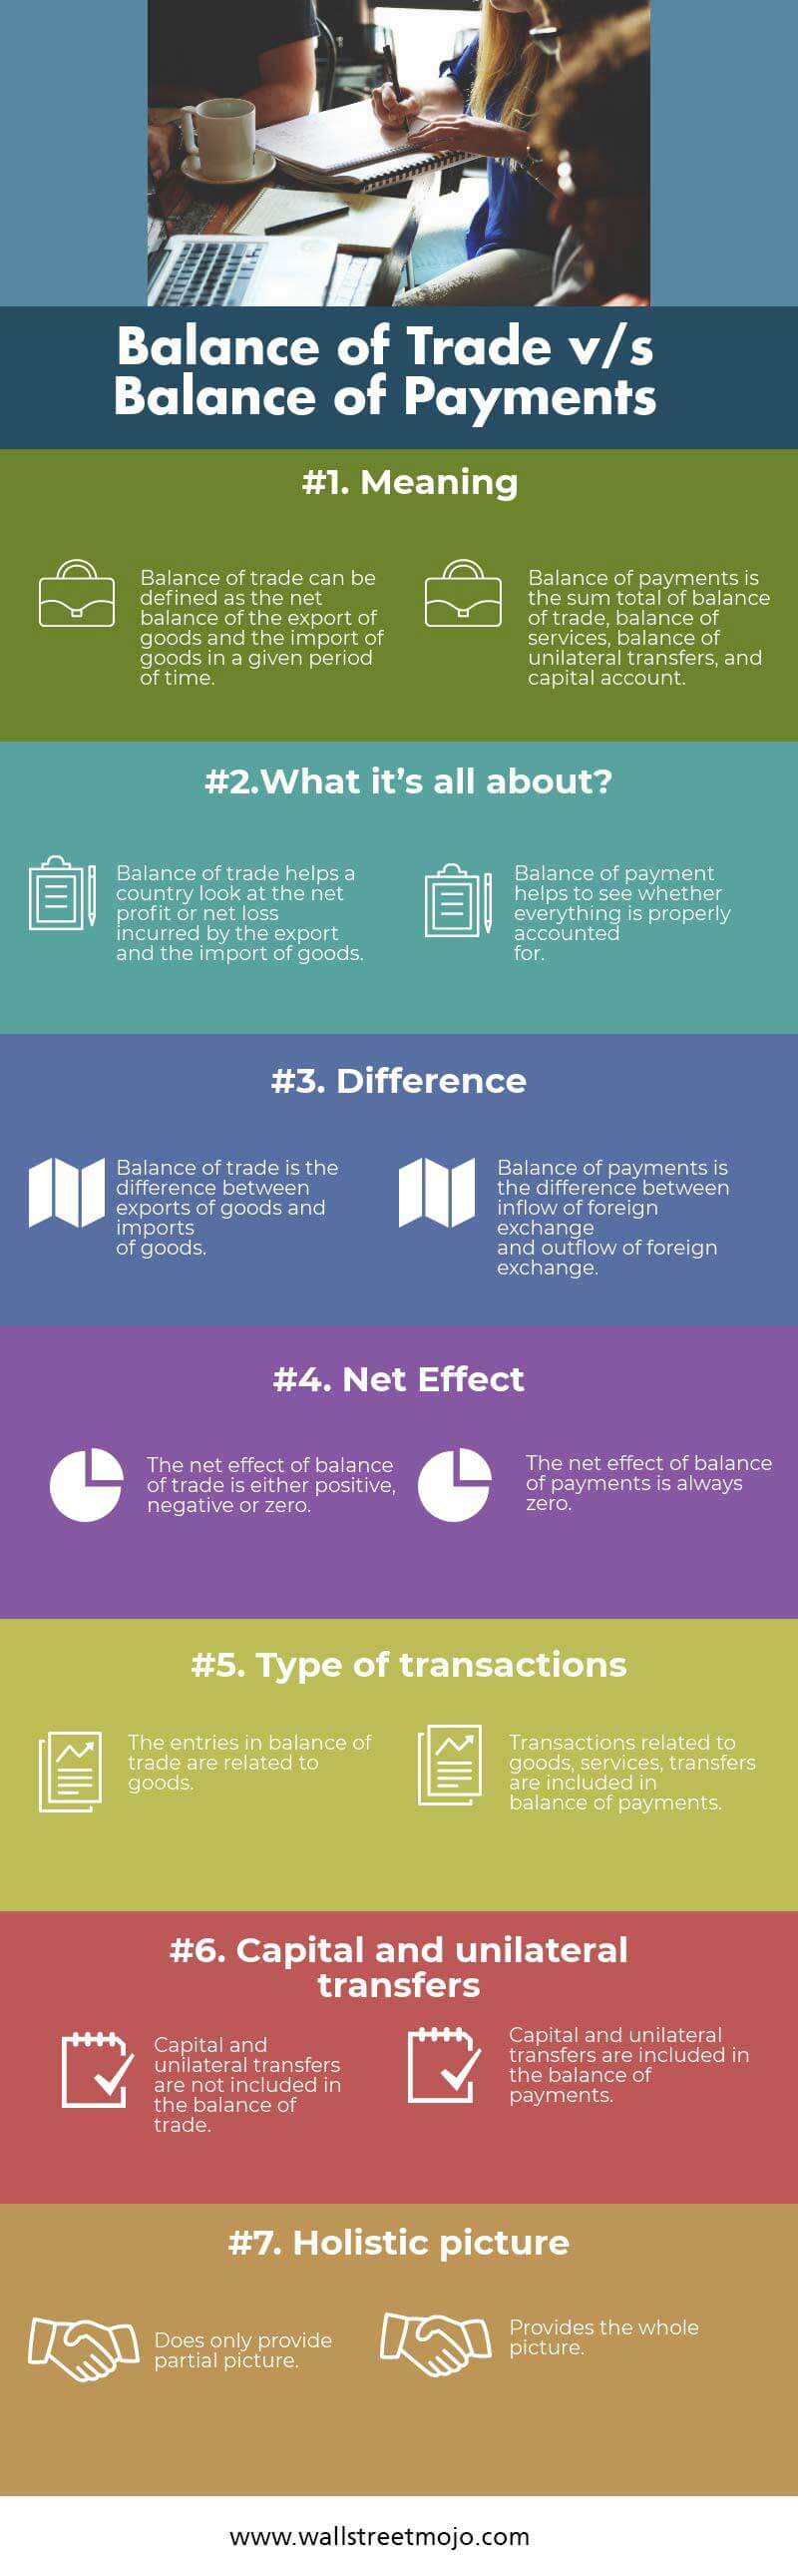 Balance-of-Trade-vs-Balance-of-Payments